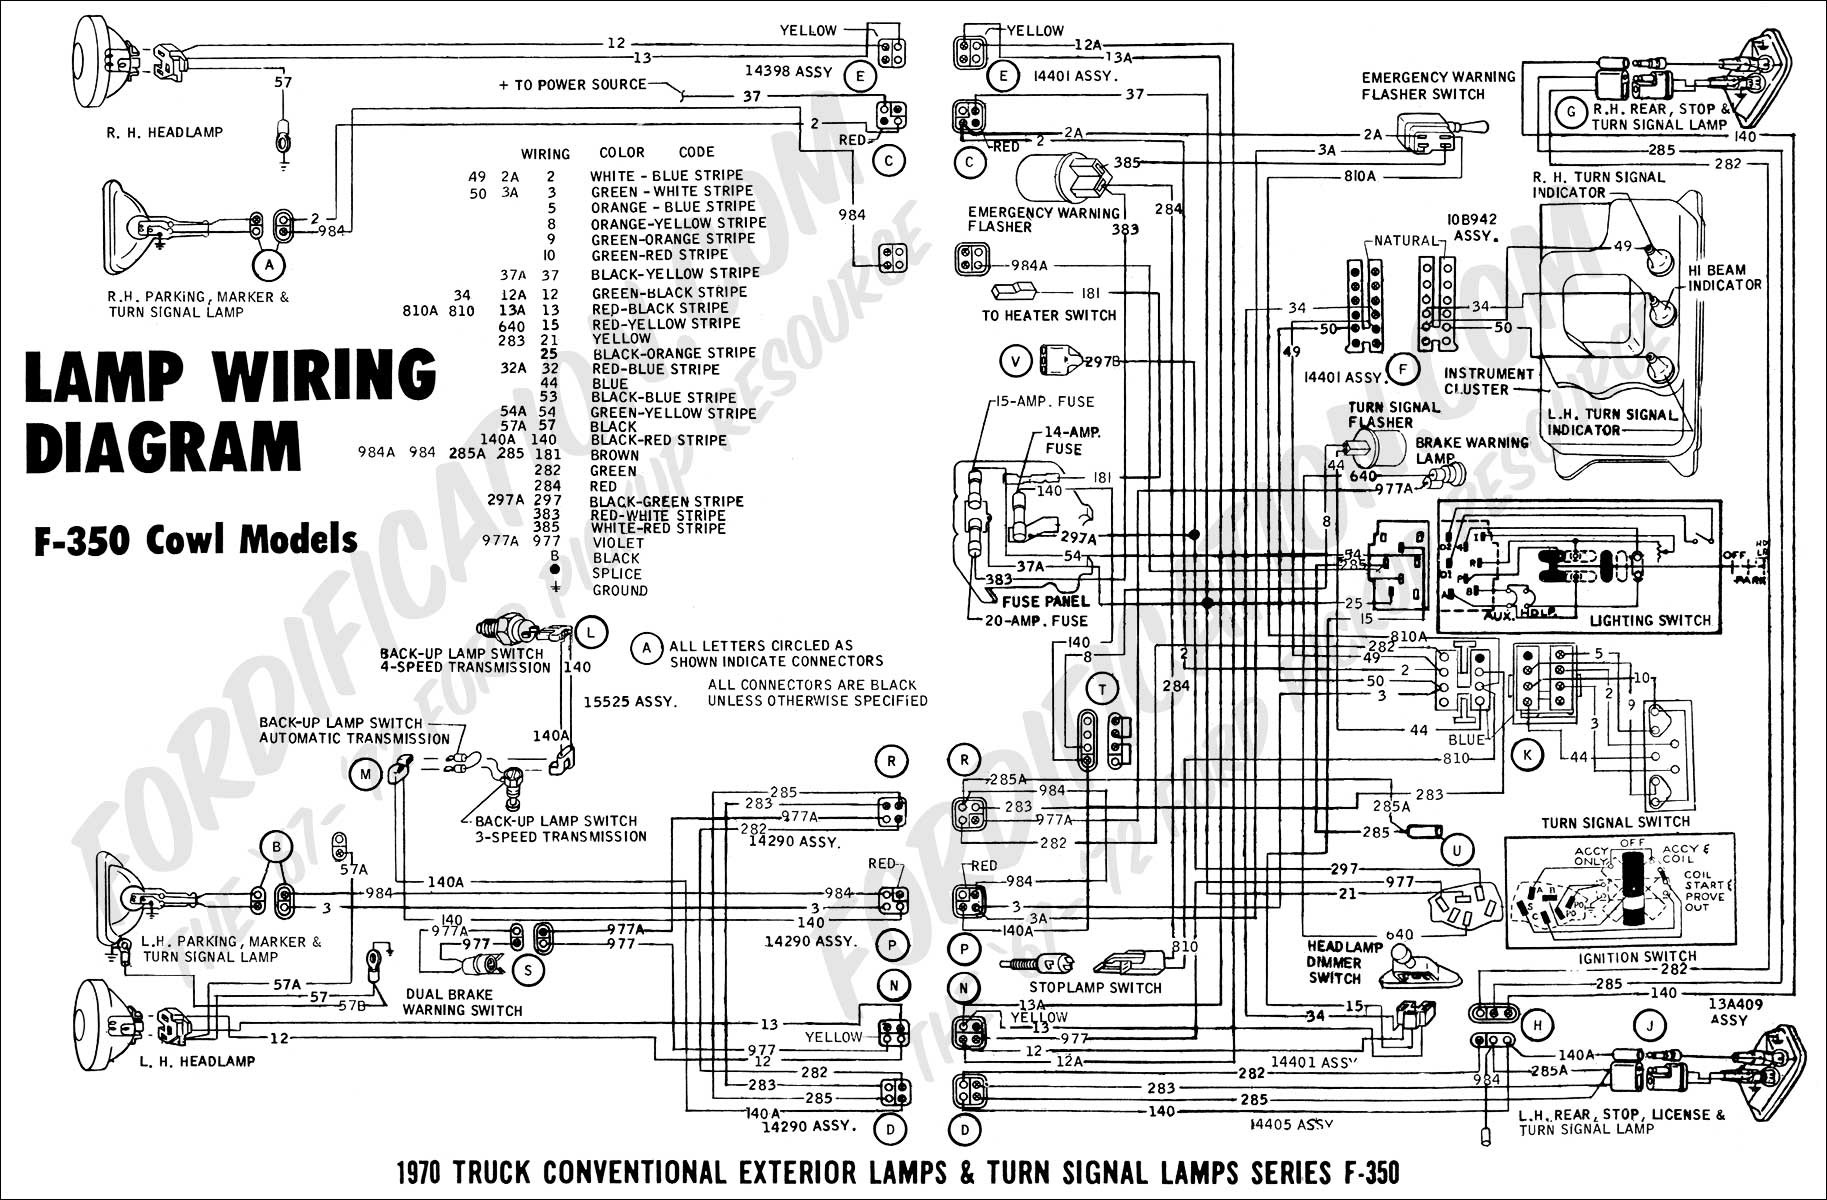 98 Ford F 250 Fuse Box Diagram Wiring Library Trailer 1985 350 Block And Schematic Diagrams U2022 F250